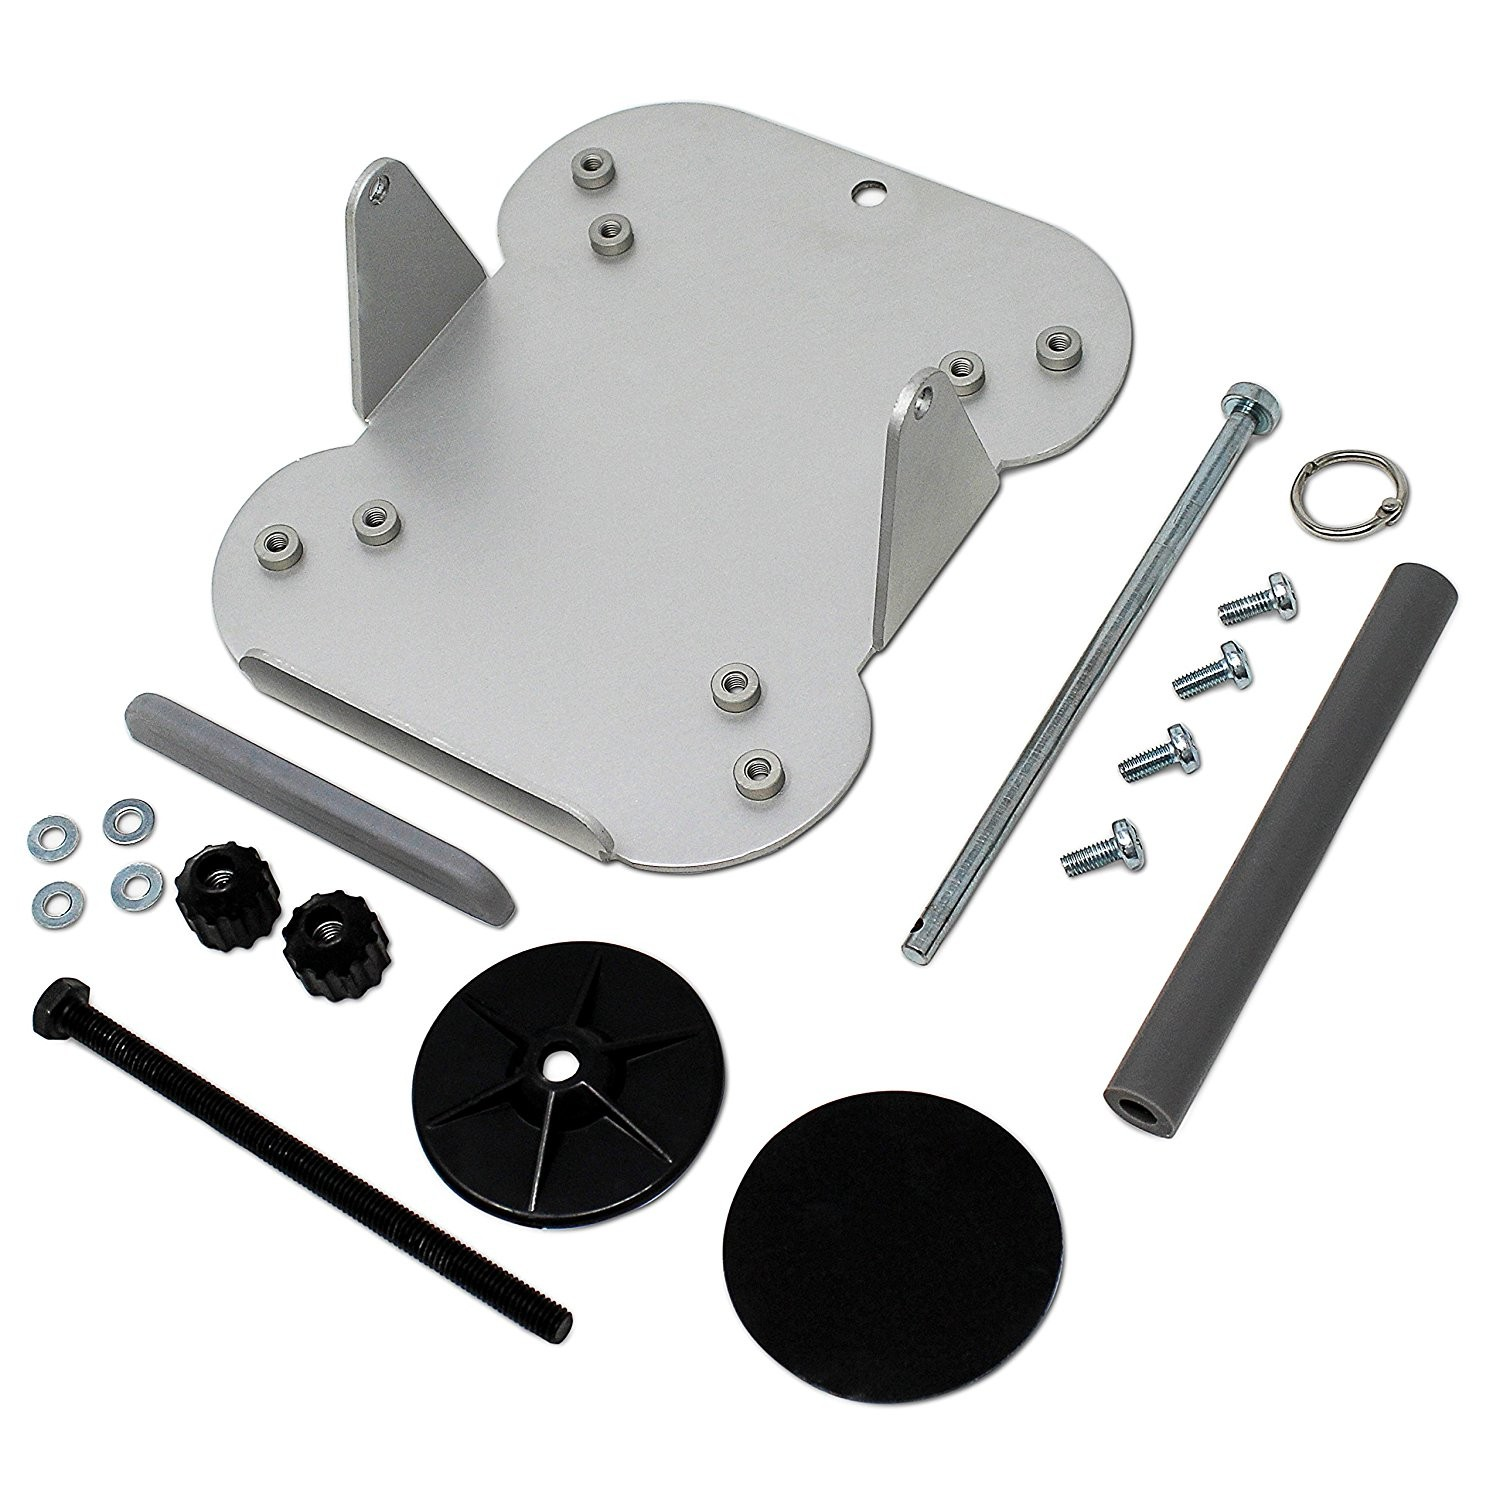 HumanCentric VESA Mounting Kit for all Apple iMacs with Non-Removable Stands, Late-2011 to Current Models - Compatible with the 2015, 2016, 2017 and 2018 Retina iMac, B074JWXLKZ